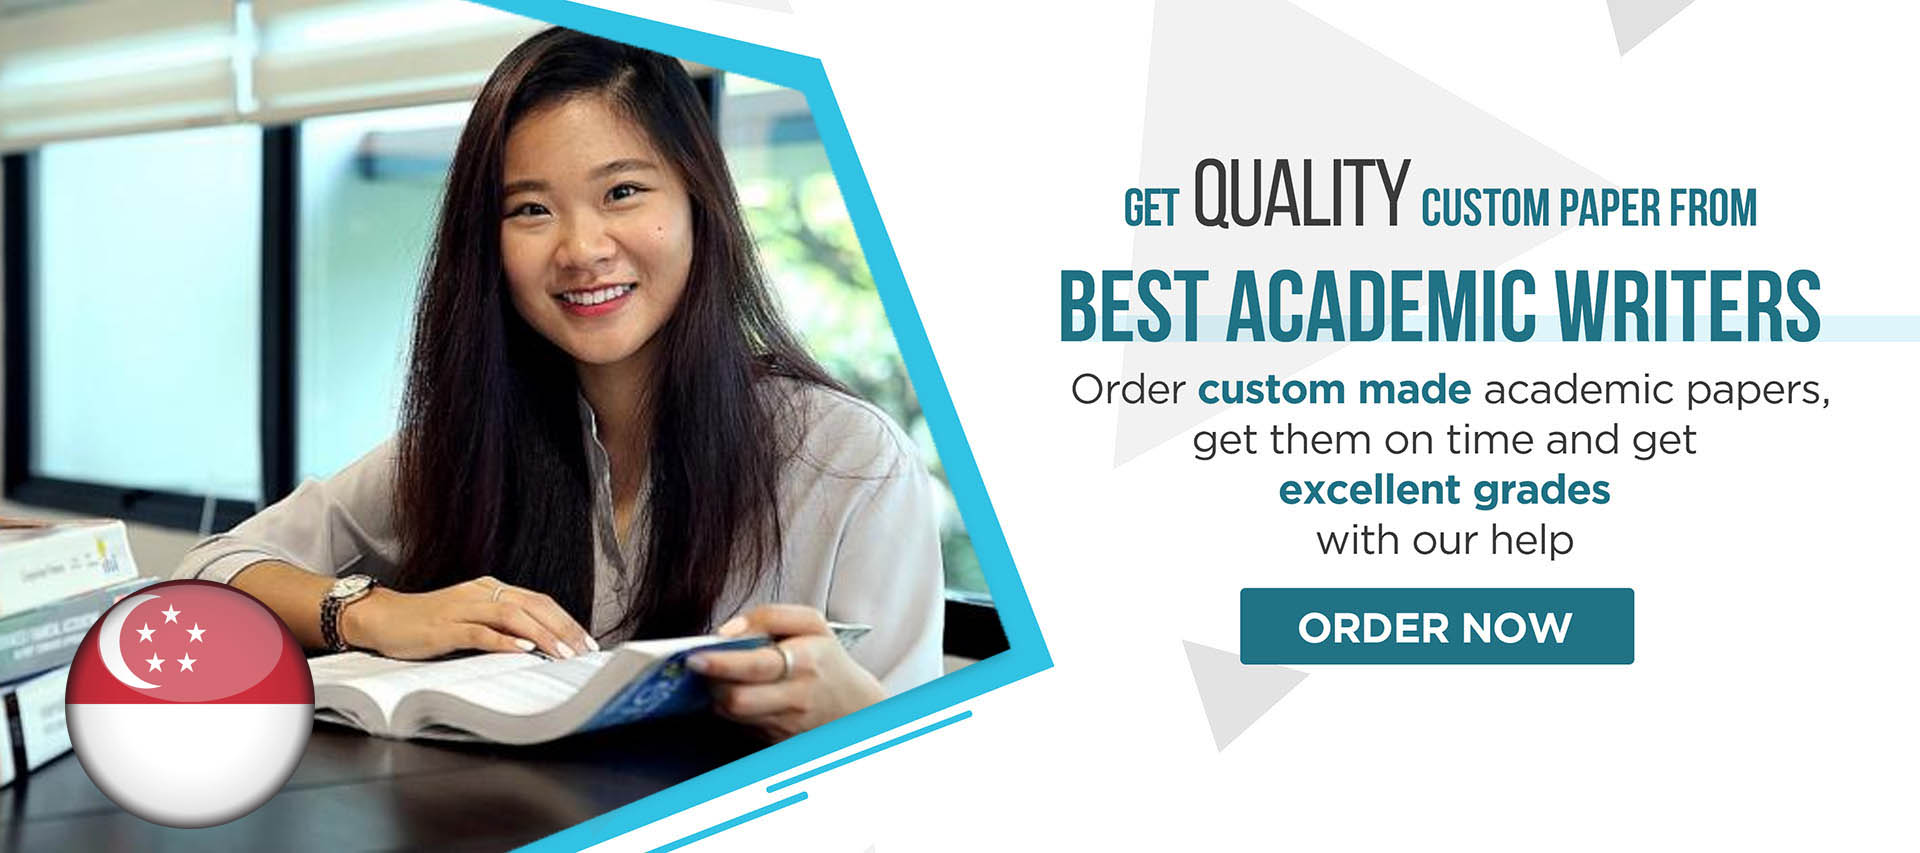 Order custom made academic papers, get them on time and get excellent grades with our help.